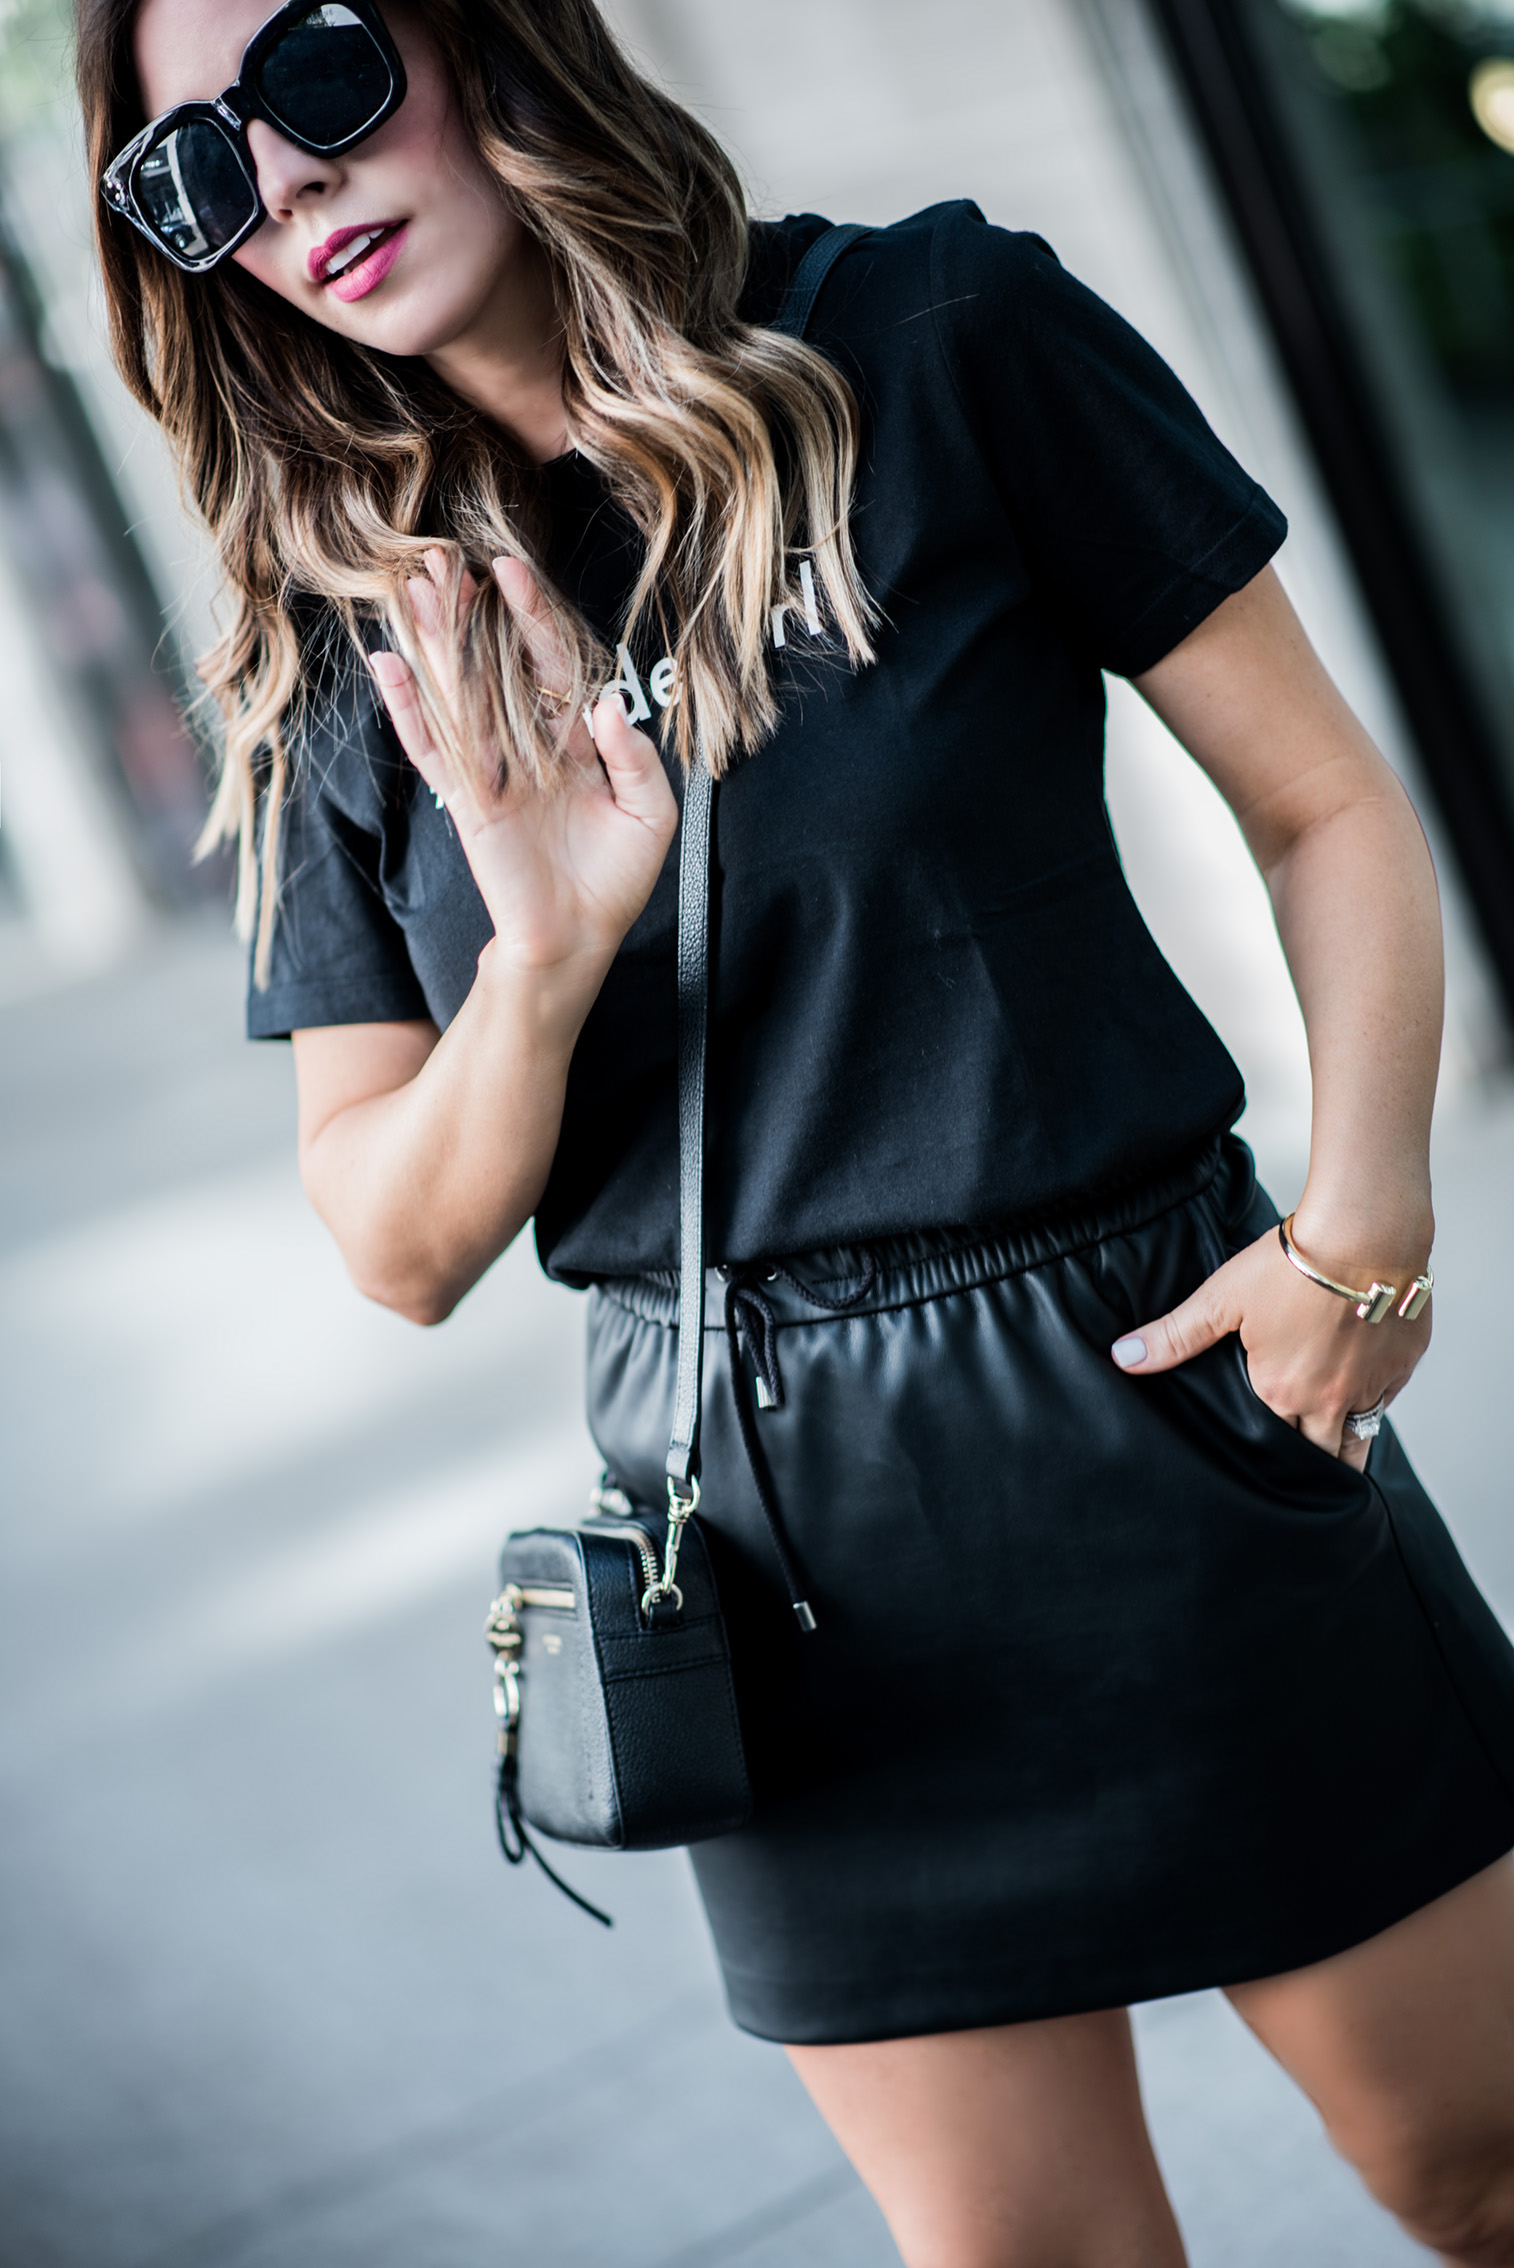 Tiffany Jais Houston fashion and lifestyle blogger | The best Memorial Day sales | All black outfits, casual outfit ideas, bendelgirl tee